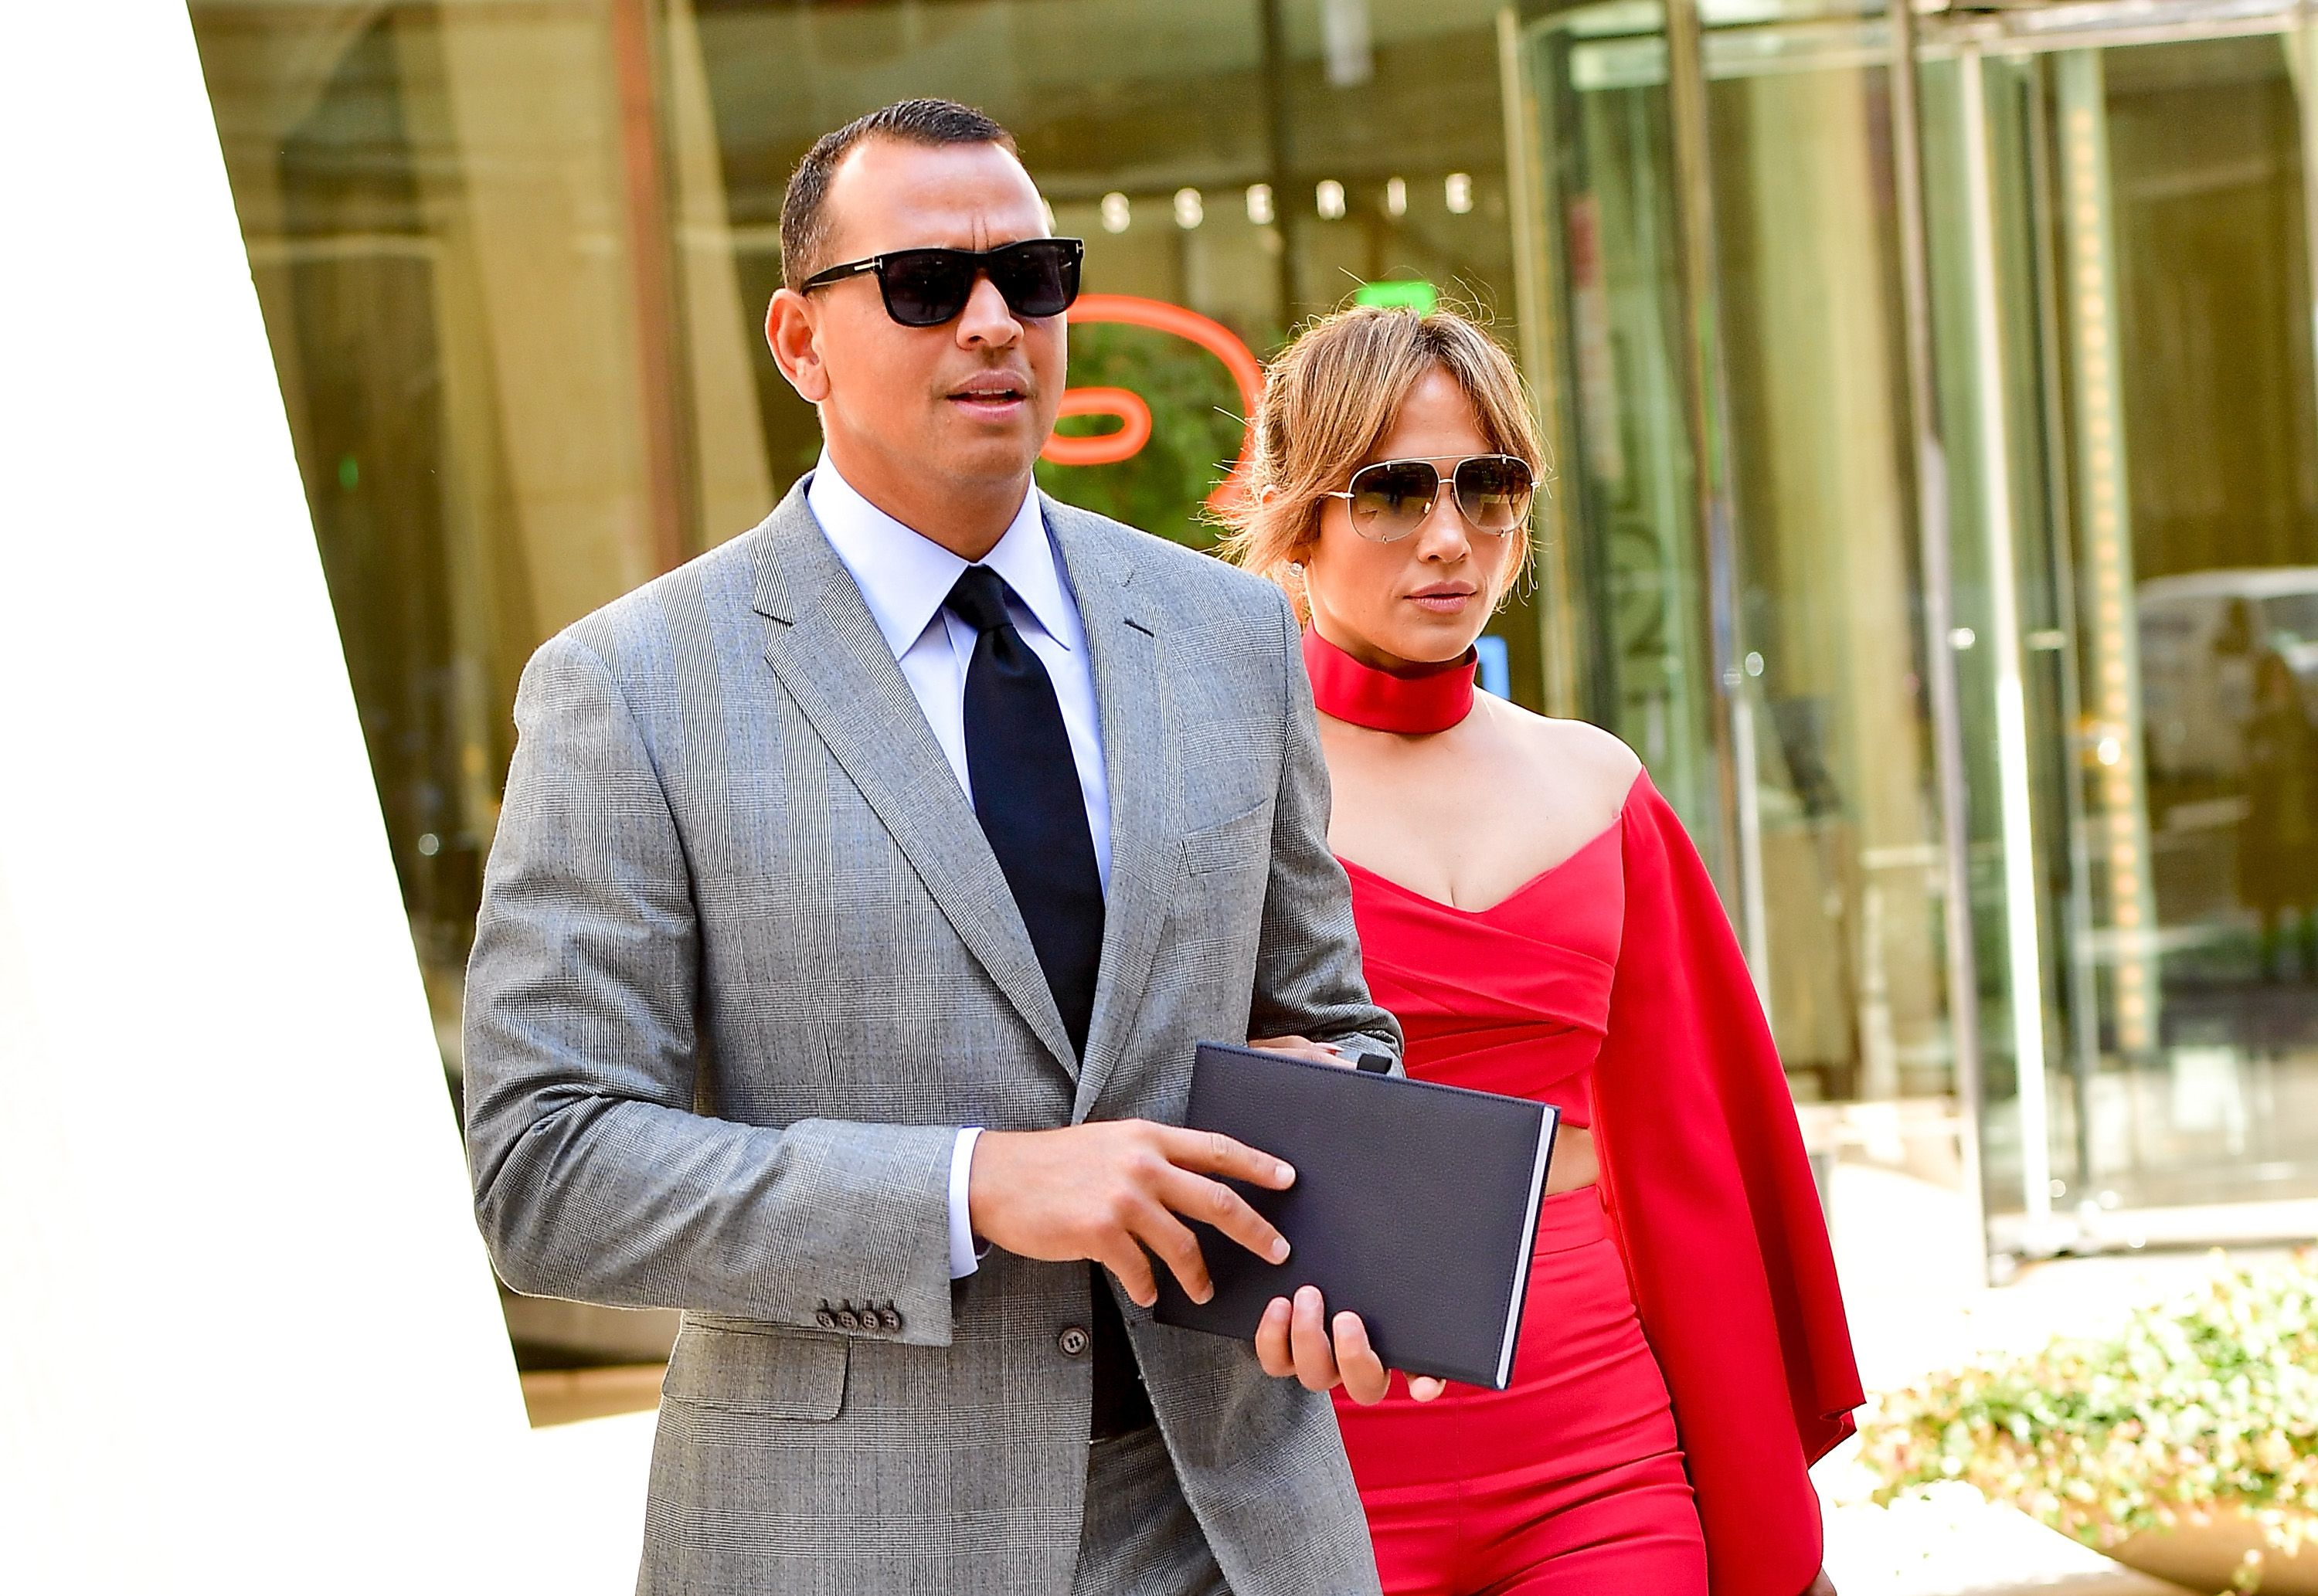 Alex Rodriguez and Jennifer Lopez leave the Solow Building on April 3, 2017 | Photo: Getty Images